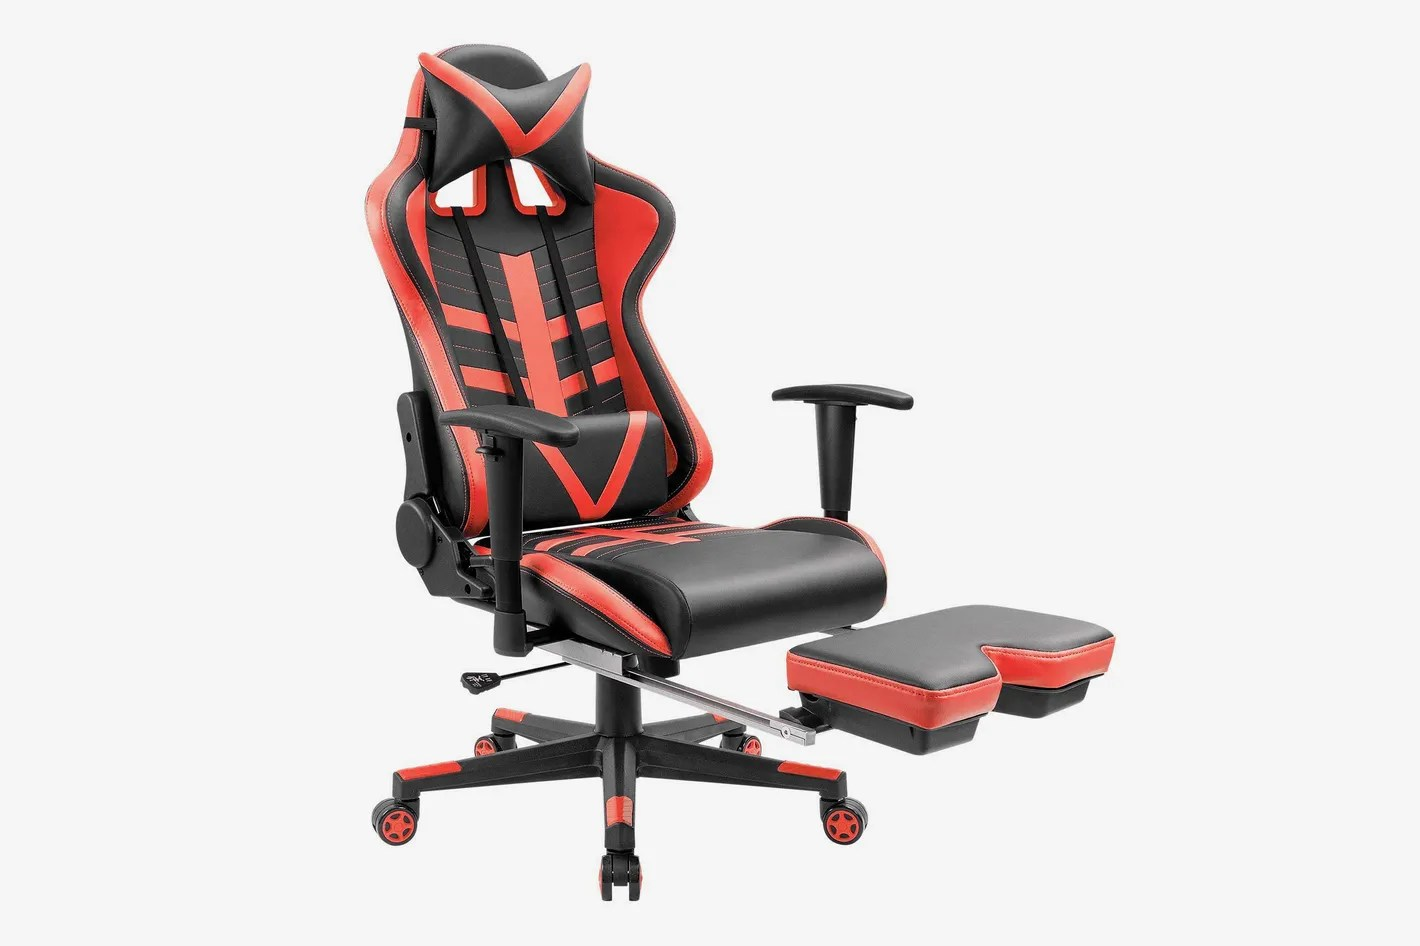 Game Chair With Speakers 12 Best Gaming Chairs 2018